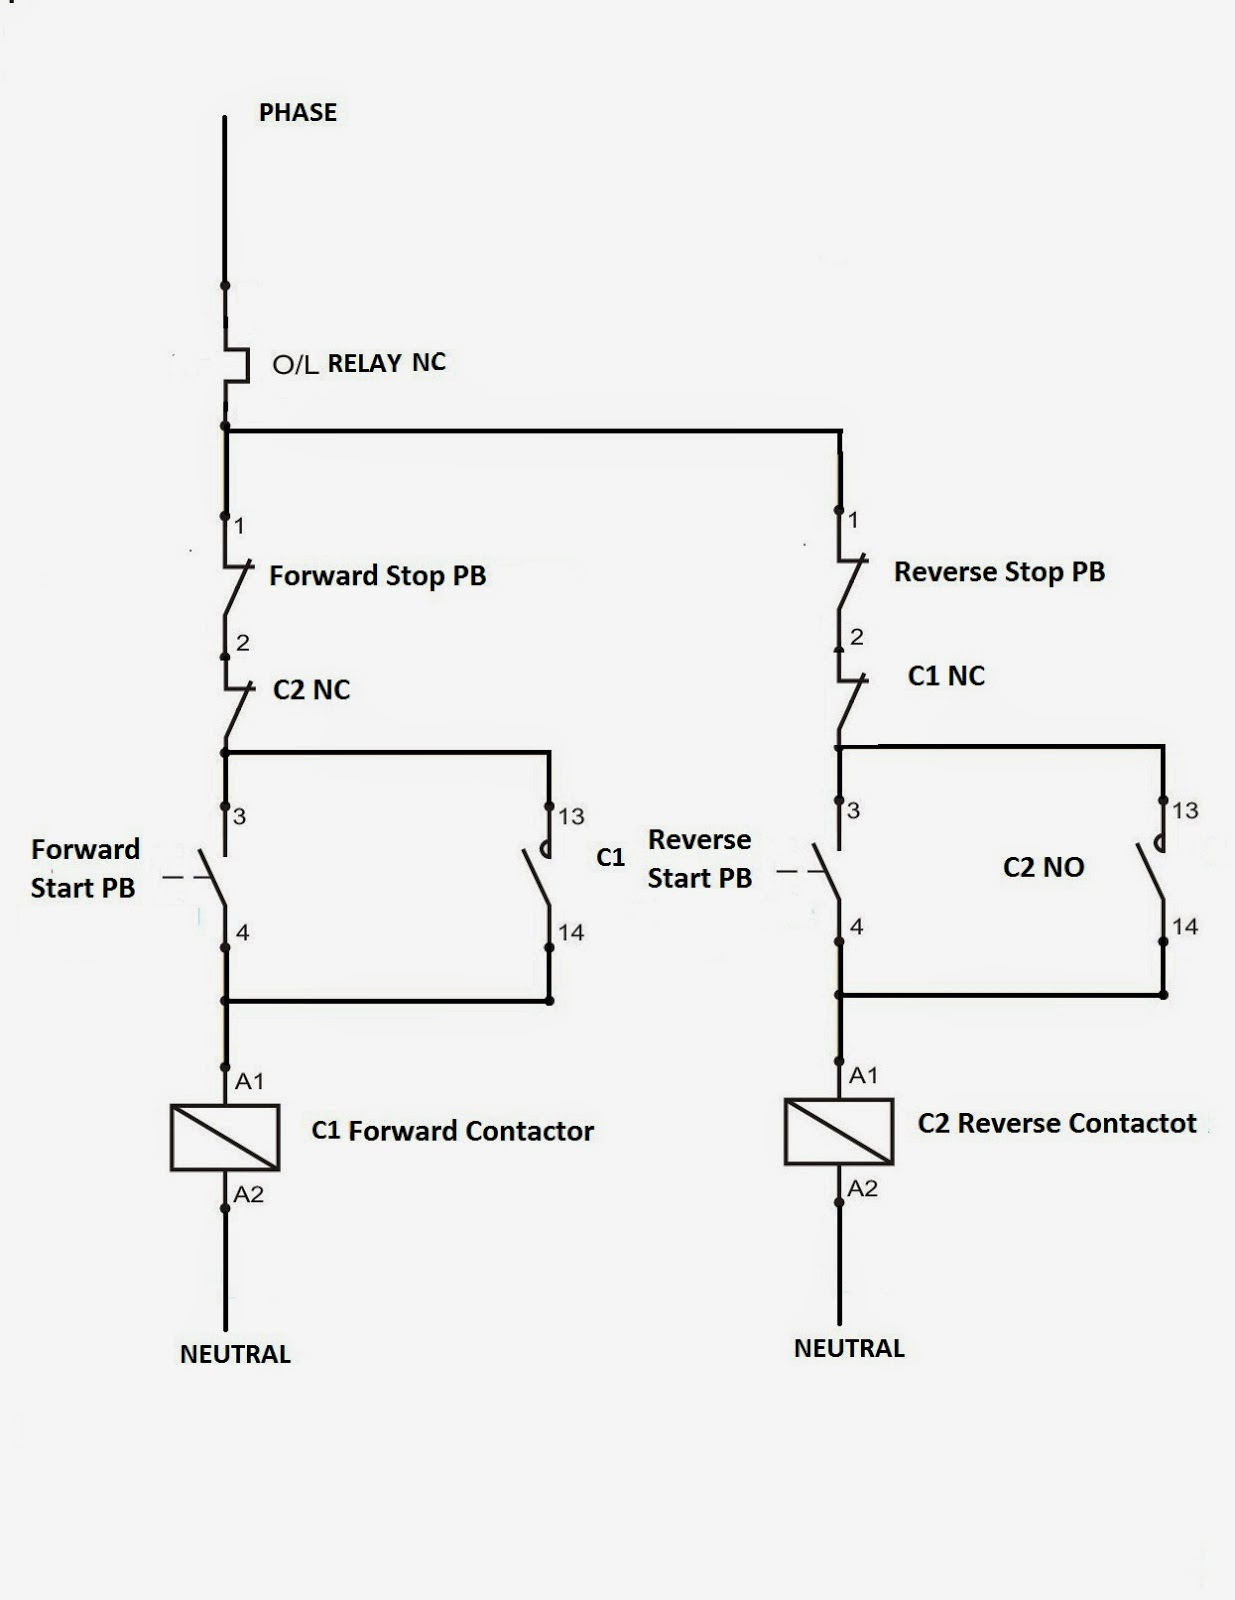 Switch Wiring Diagram Pdf | Wiring Diagram on veeder root wiring diagram, grundfos wiring diagram, bourns wiring diagram, timer wiring diagram, dayton furnace wiring diagram, toshiba wiring diagram,